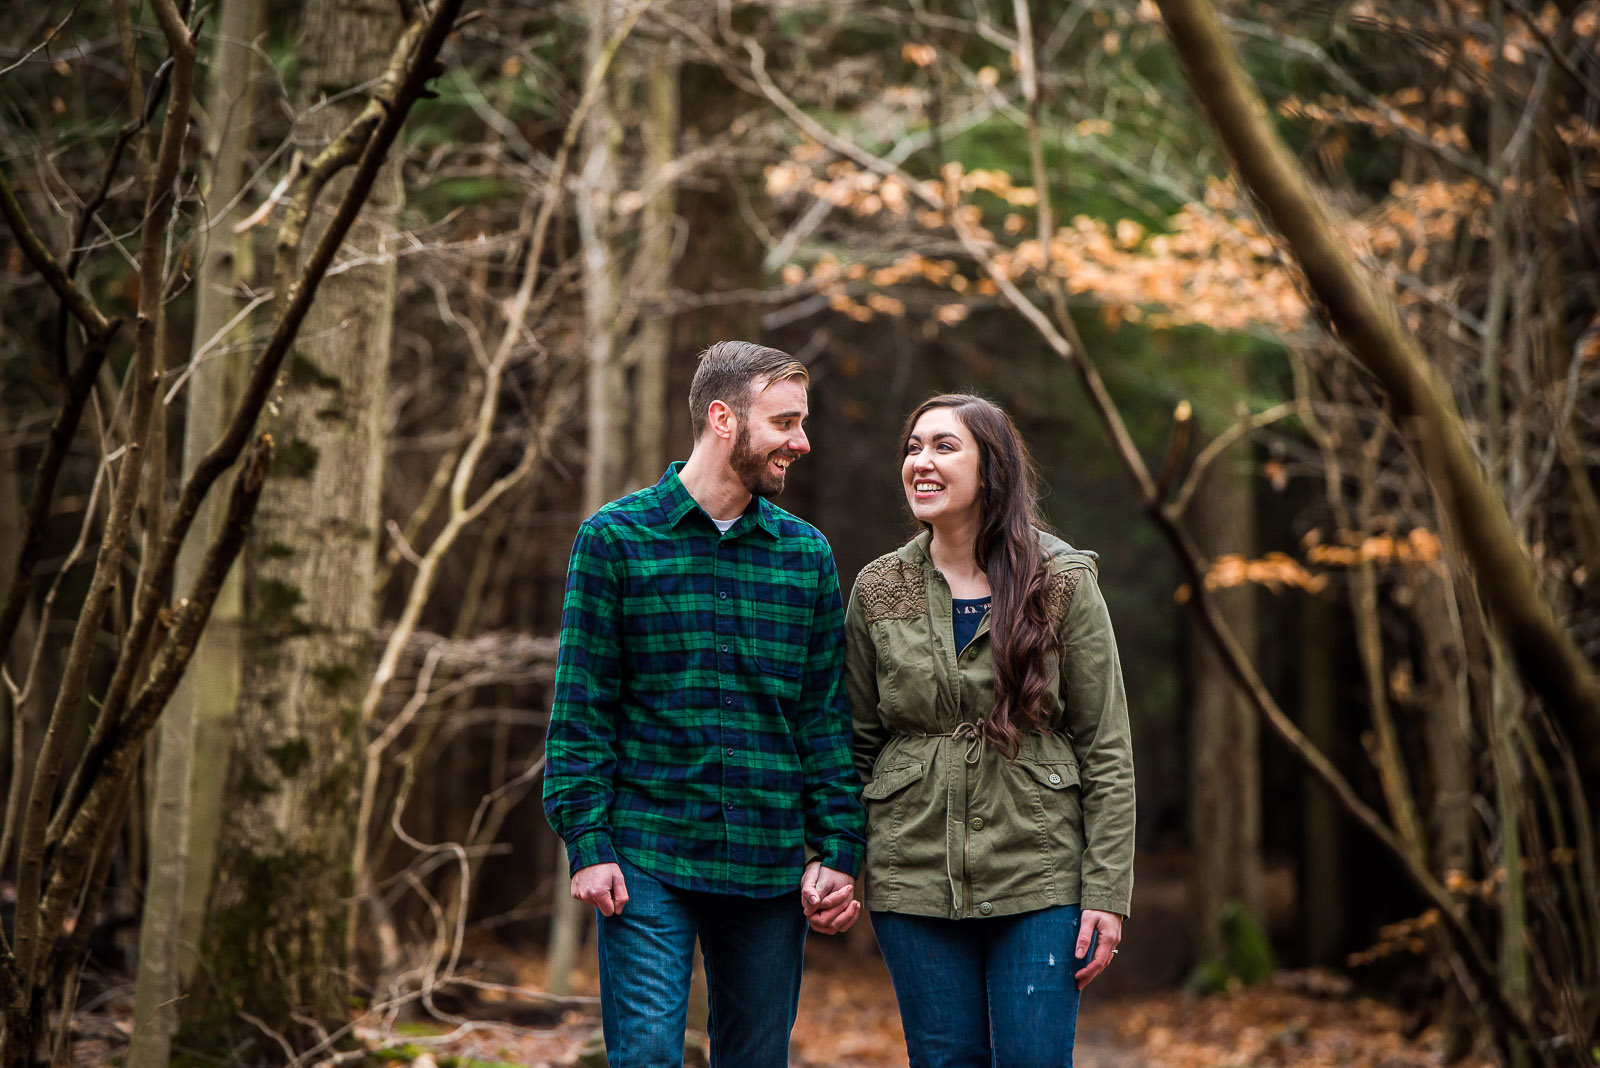 Eric_and_Christy_Photography_Blog_2016_Best_Engagement--4